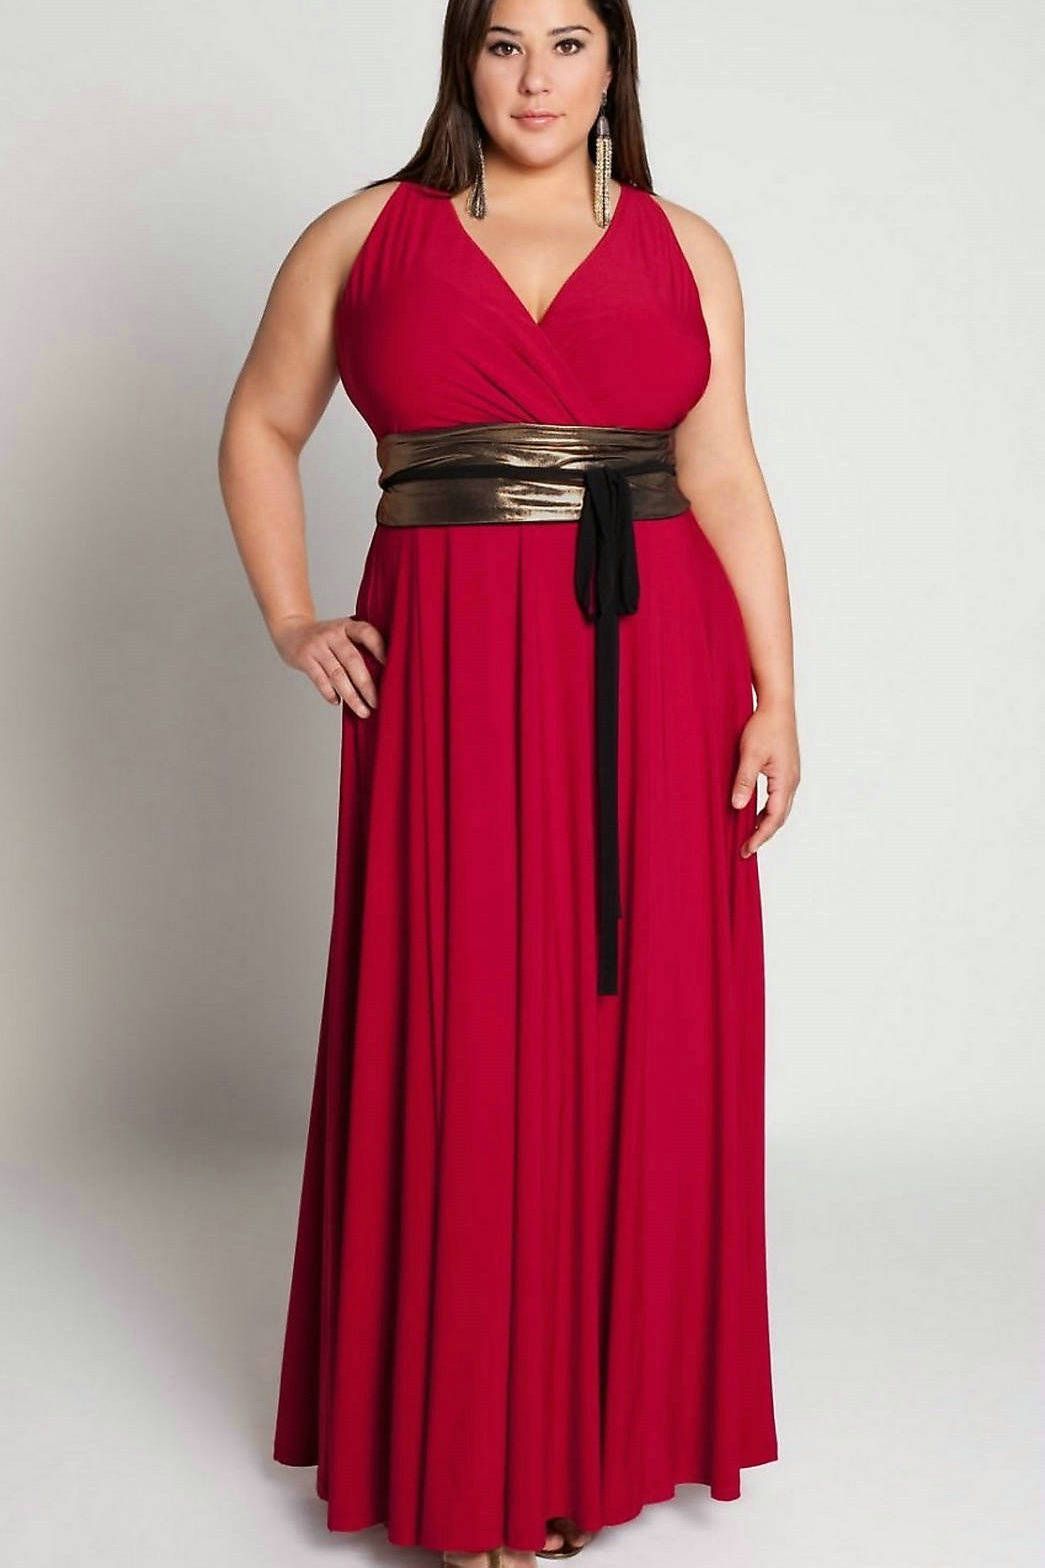 Something Related to Plus Size Prom Dresses Gowns Fashion ...